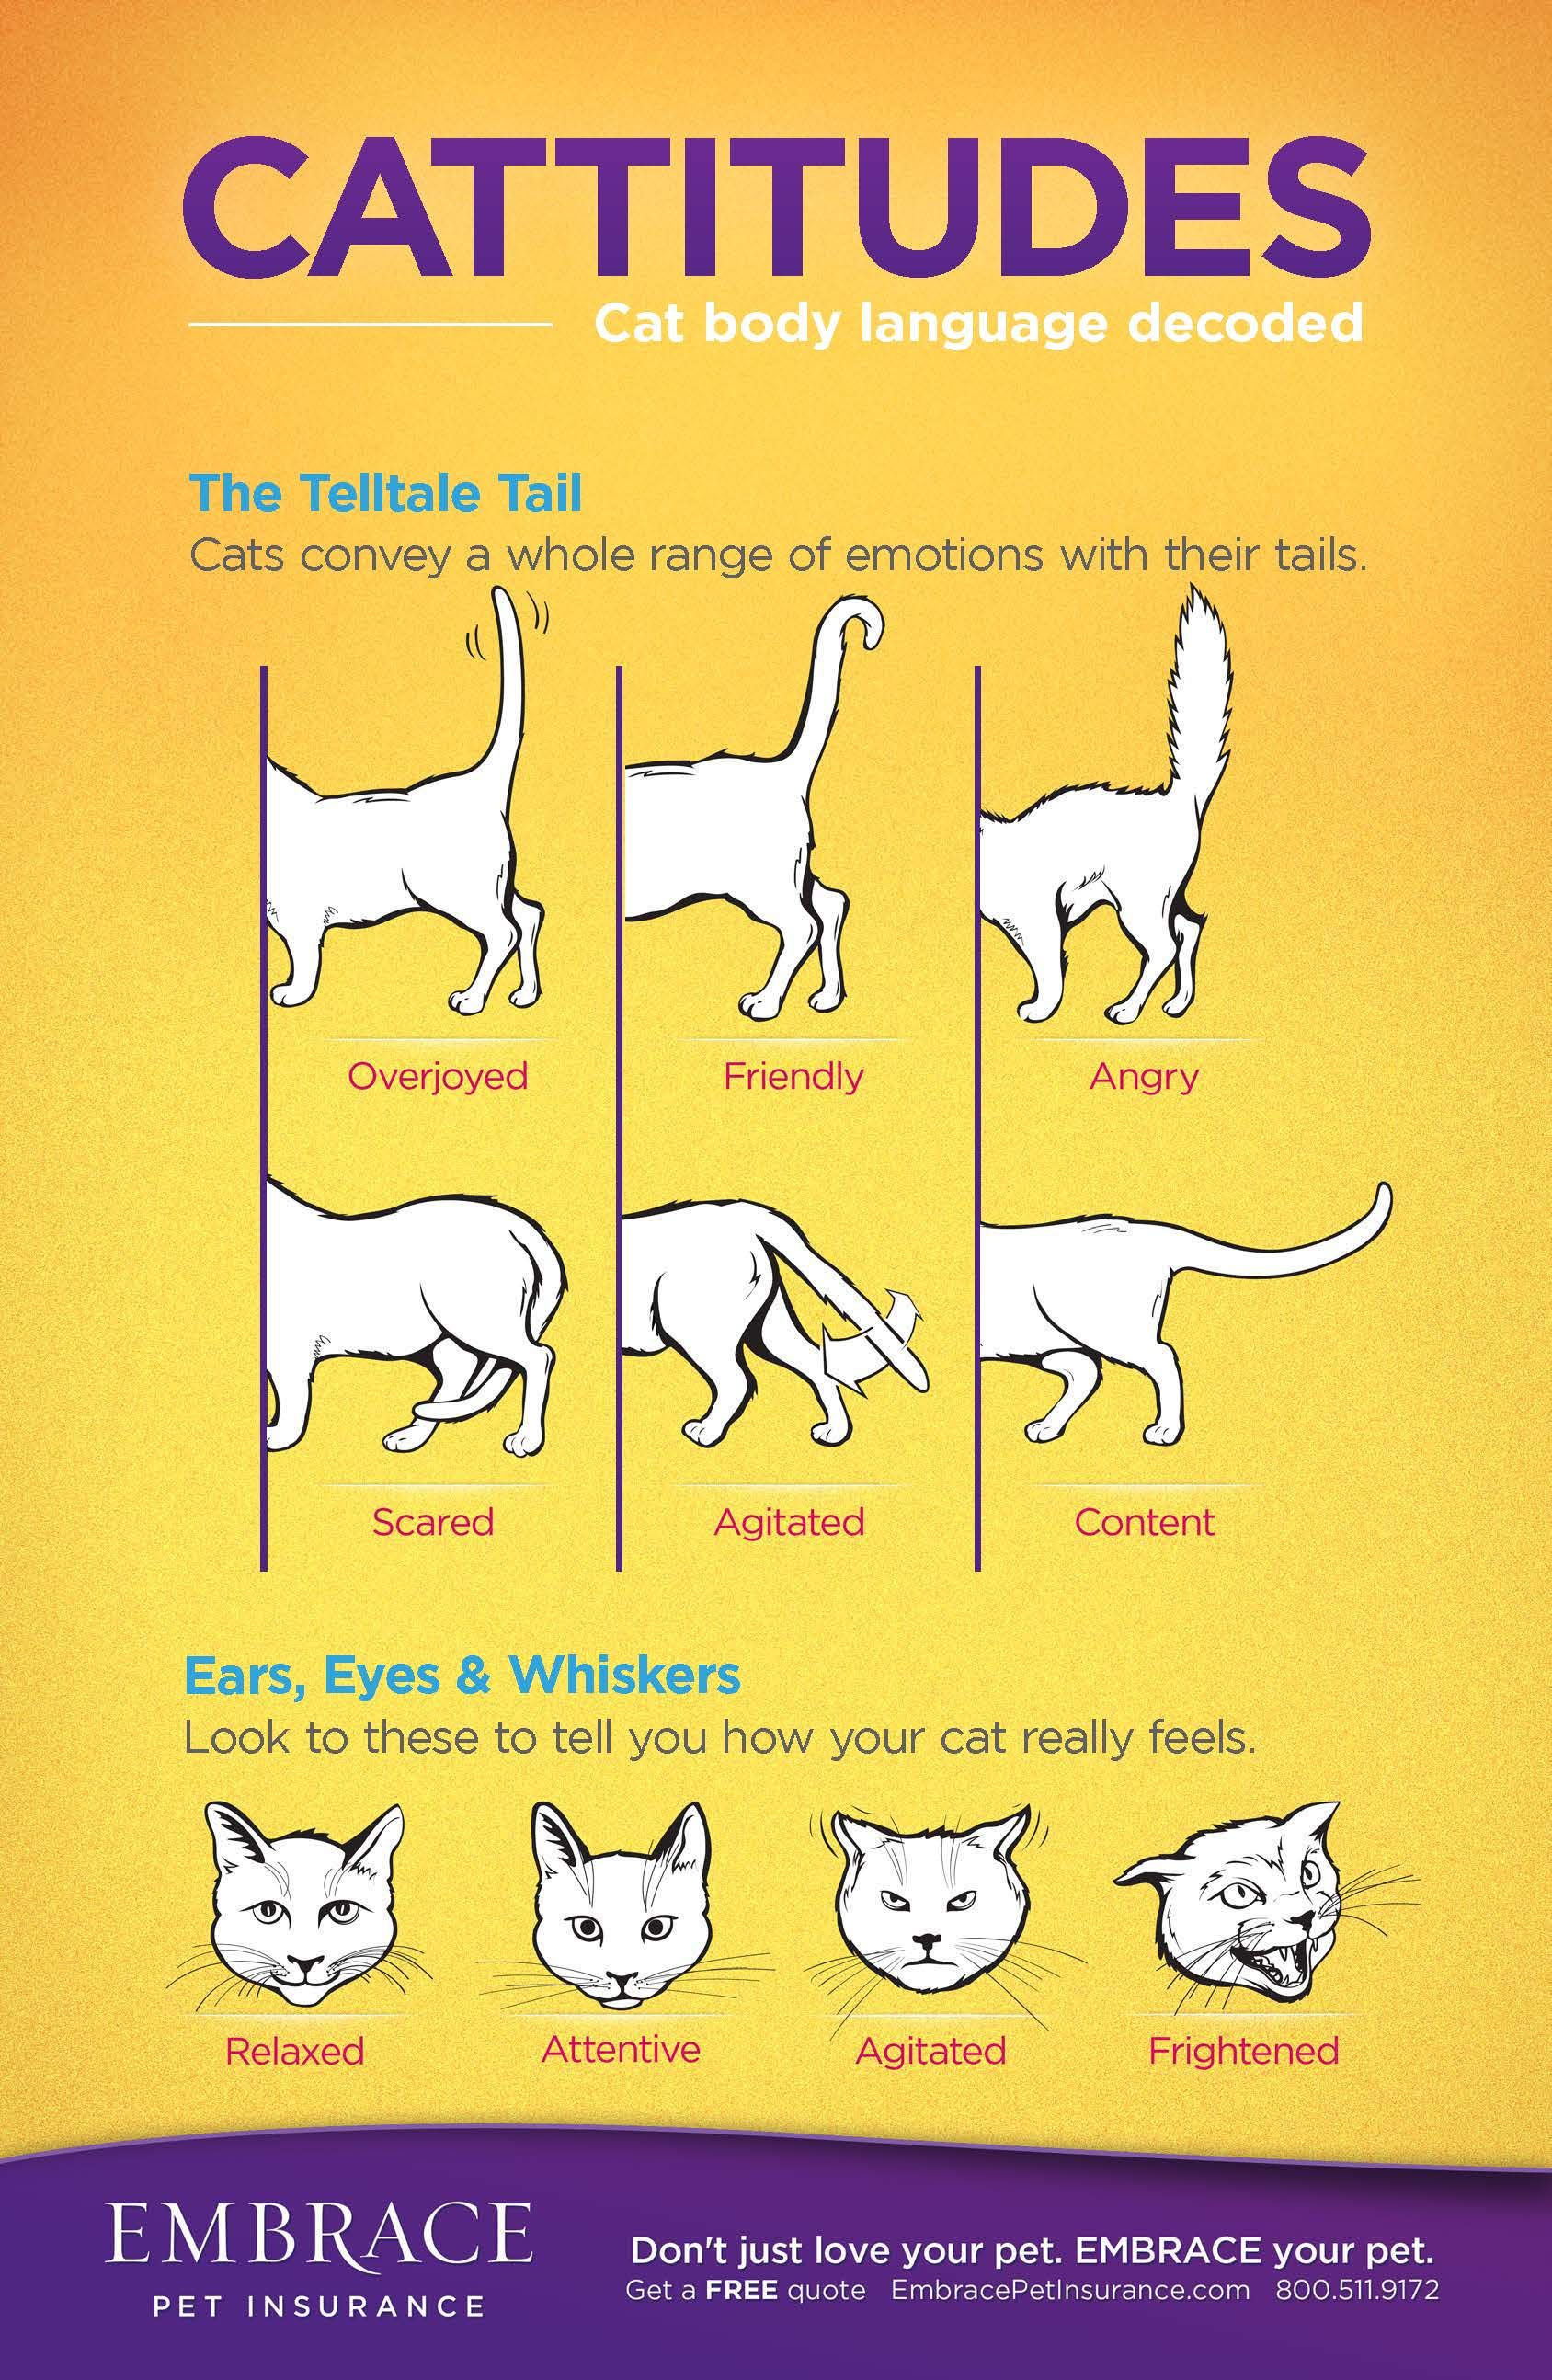 Learn to read your cat's body language! For more on cat